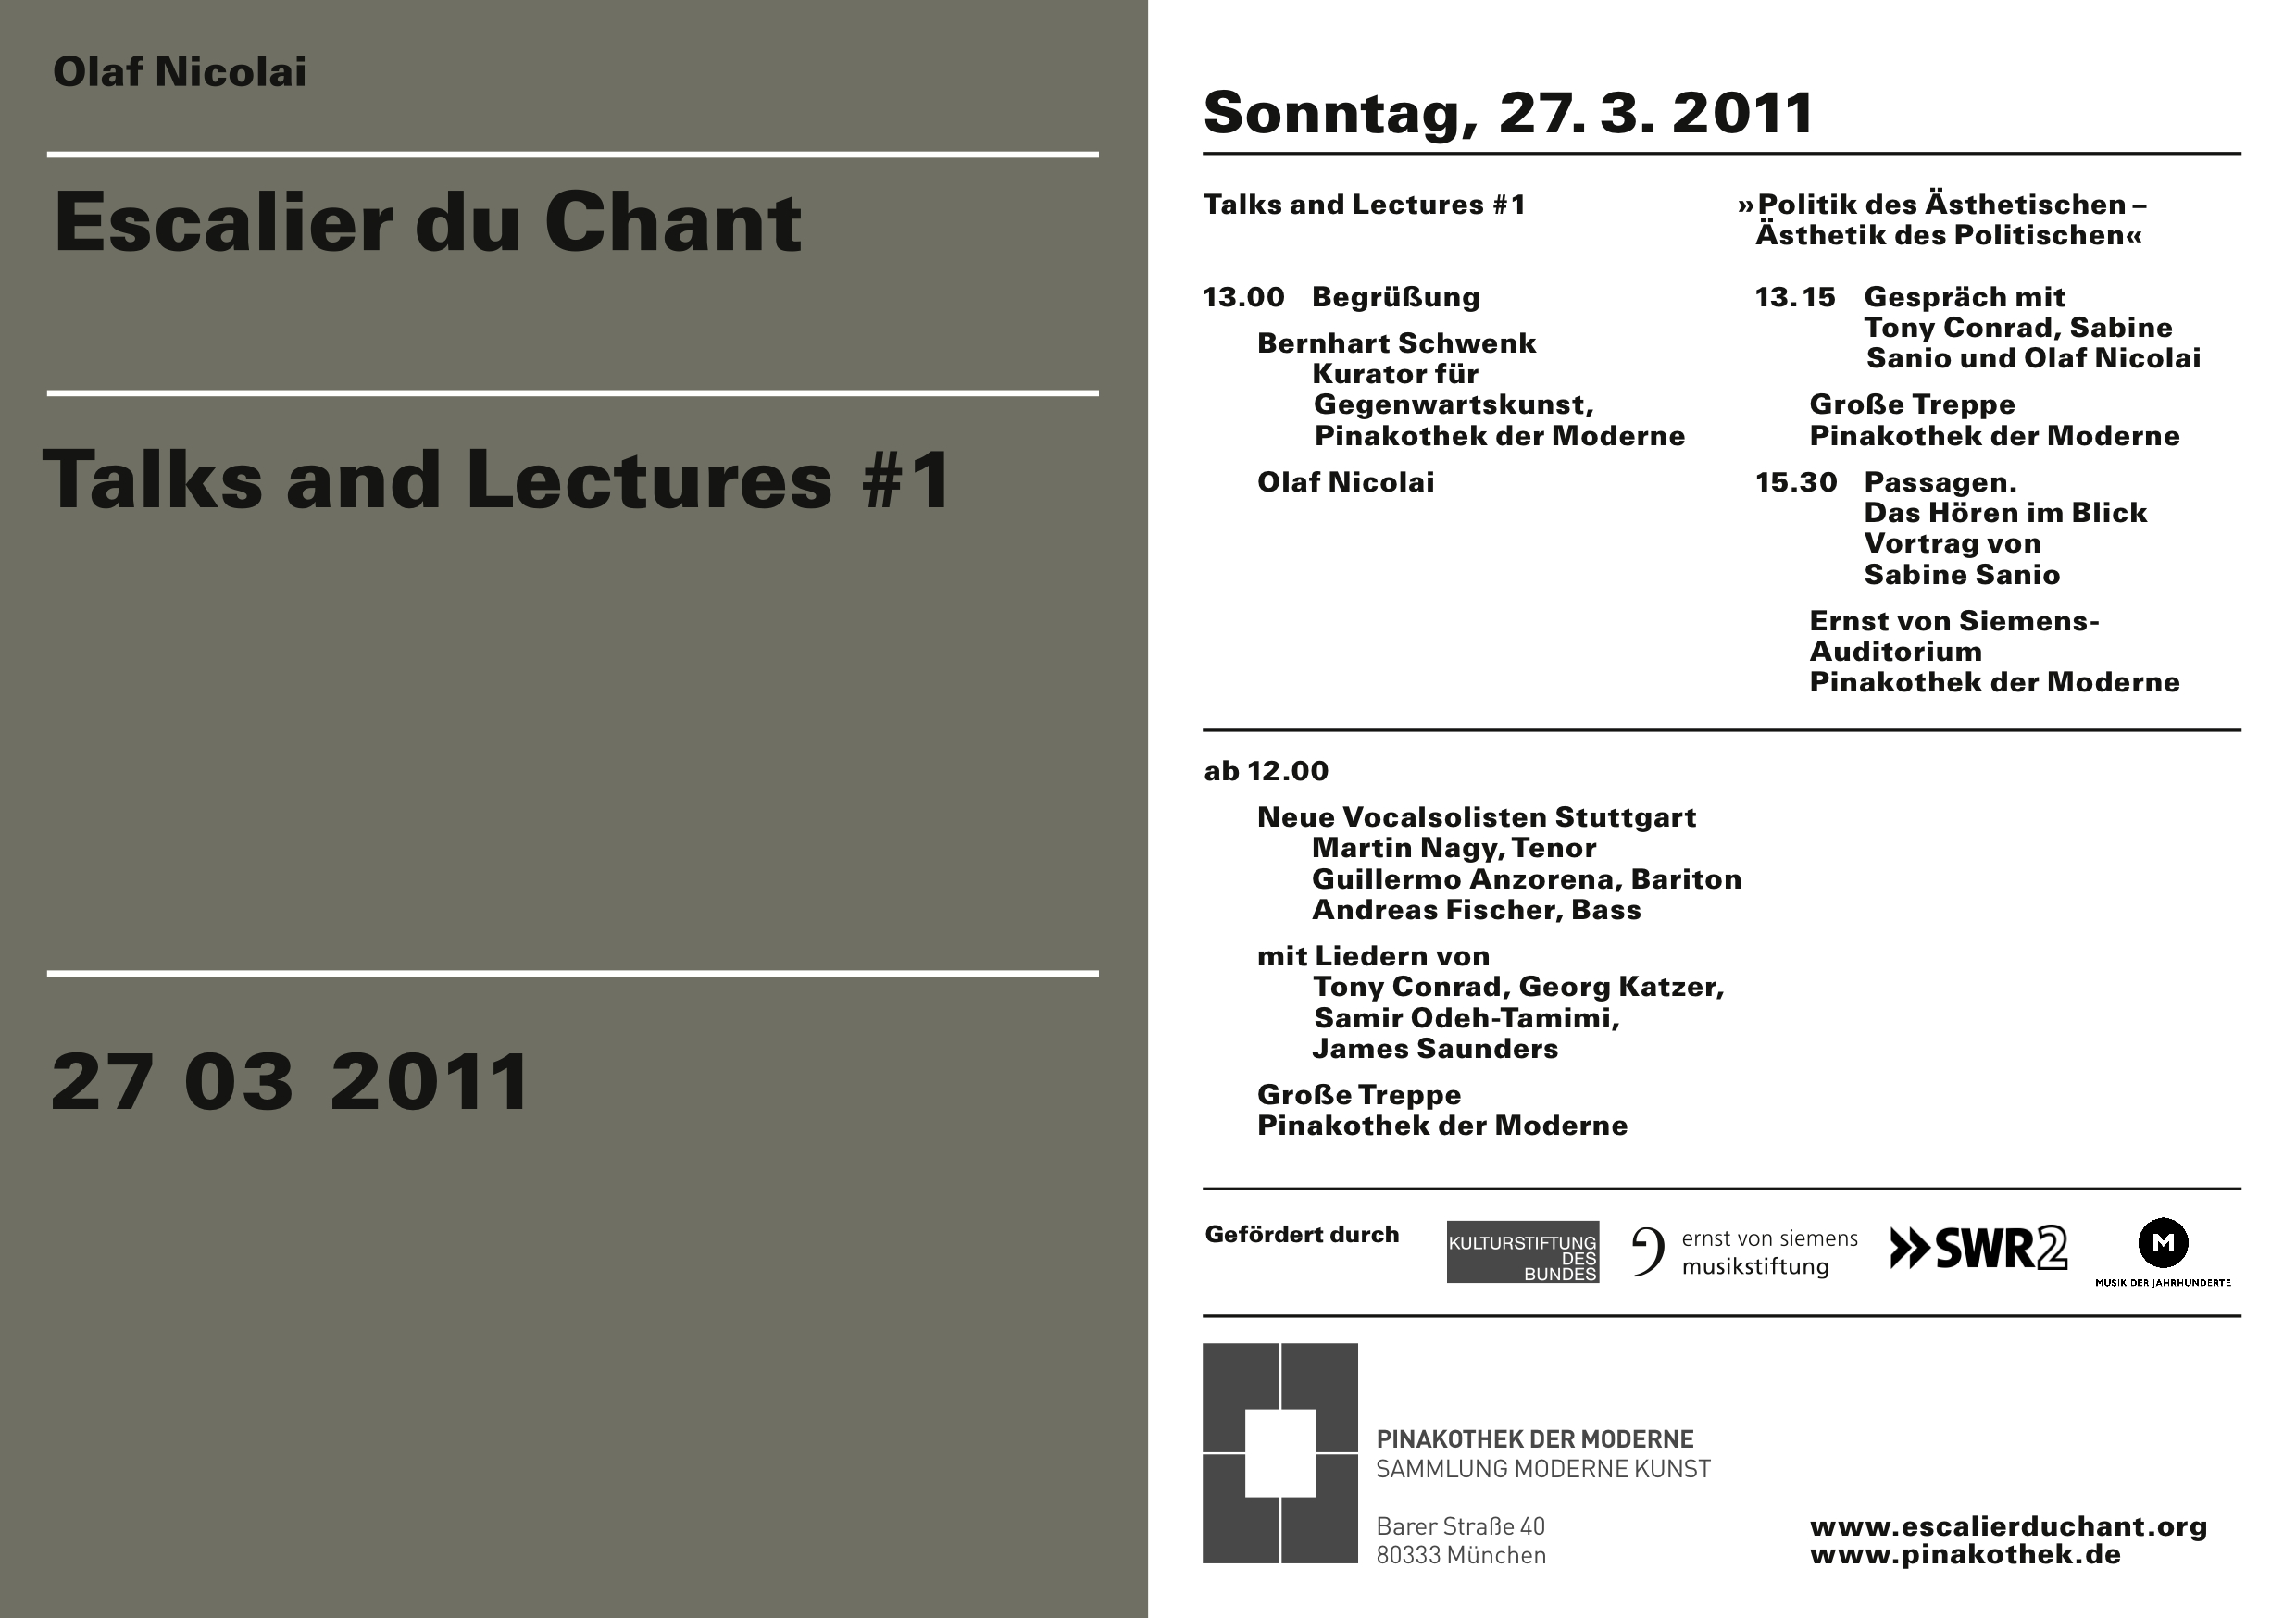 Escalier du Chant, Talks and Lectures